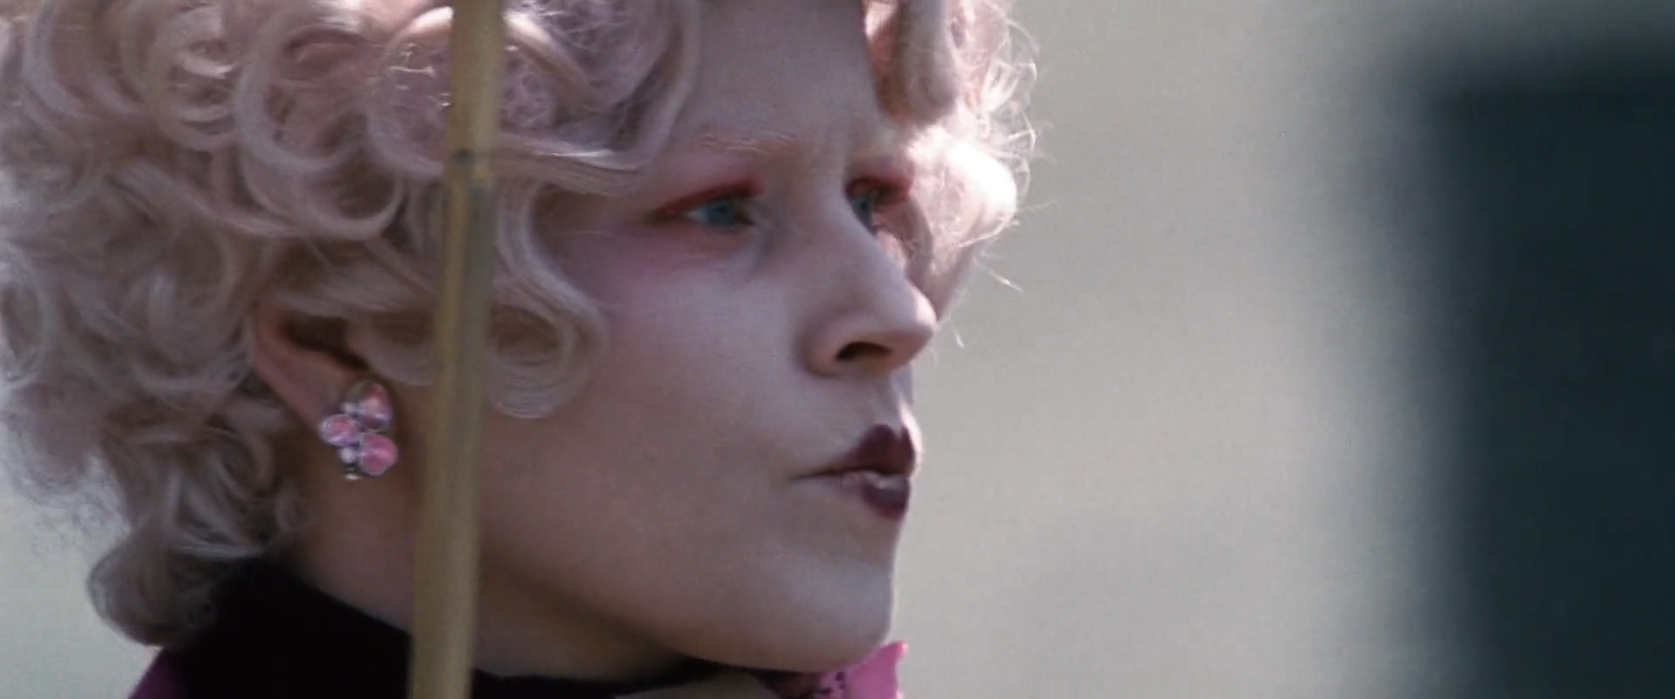 Elizabeth Banks as Effie Trinket light cotton candy pink curly hair